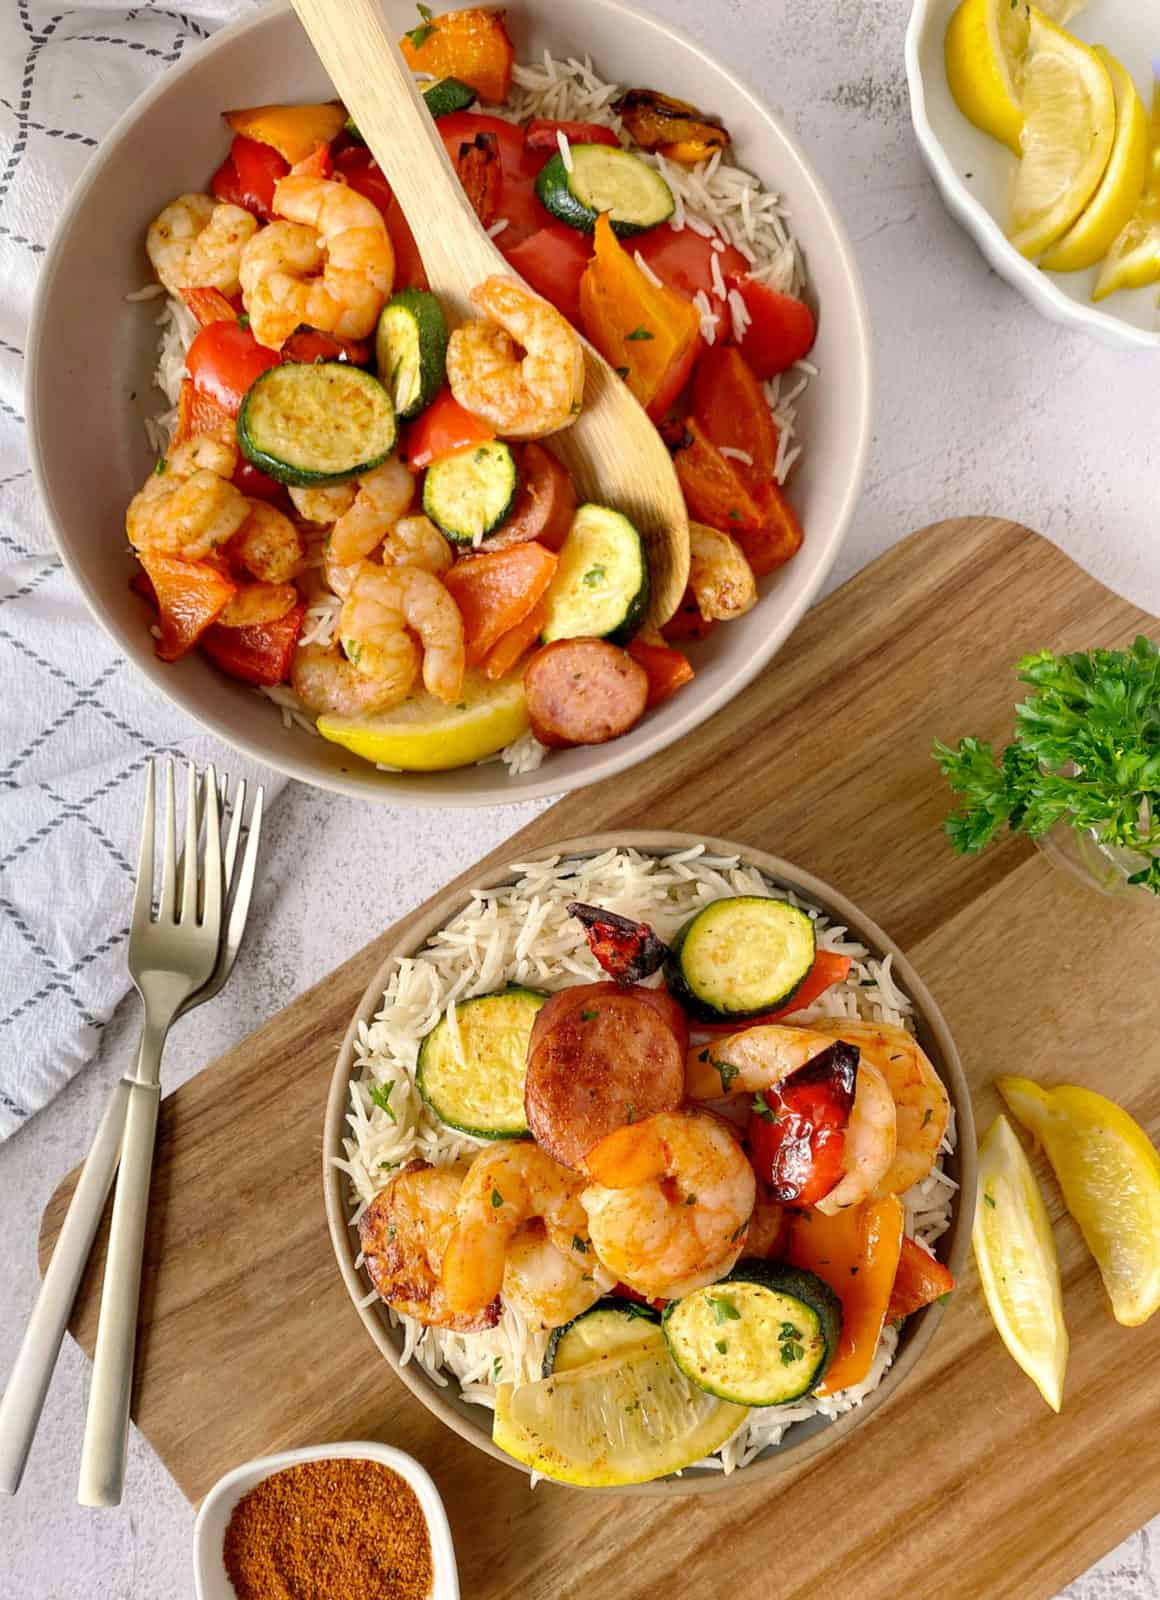 bowl of shrimp and veggies next to vowl of shrimip and veggies on top of rice